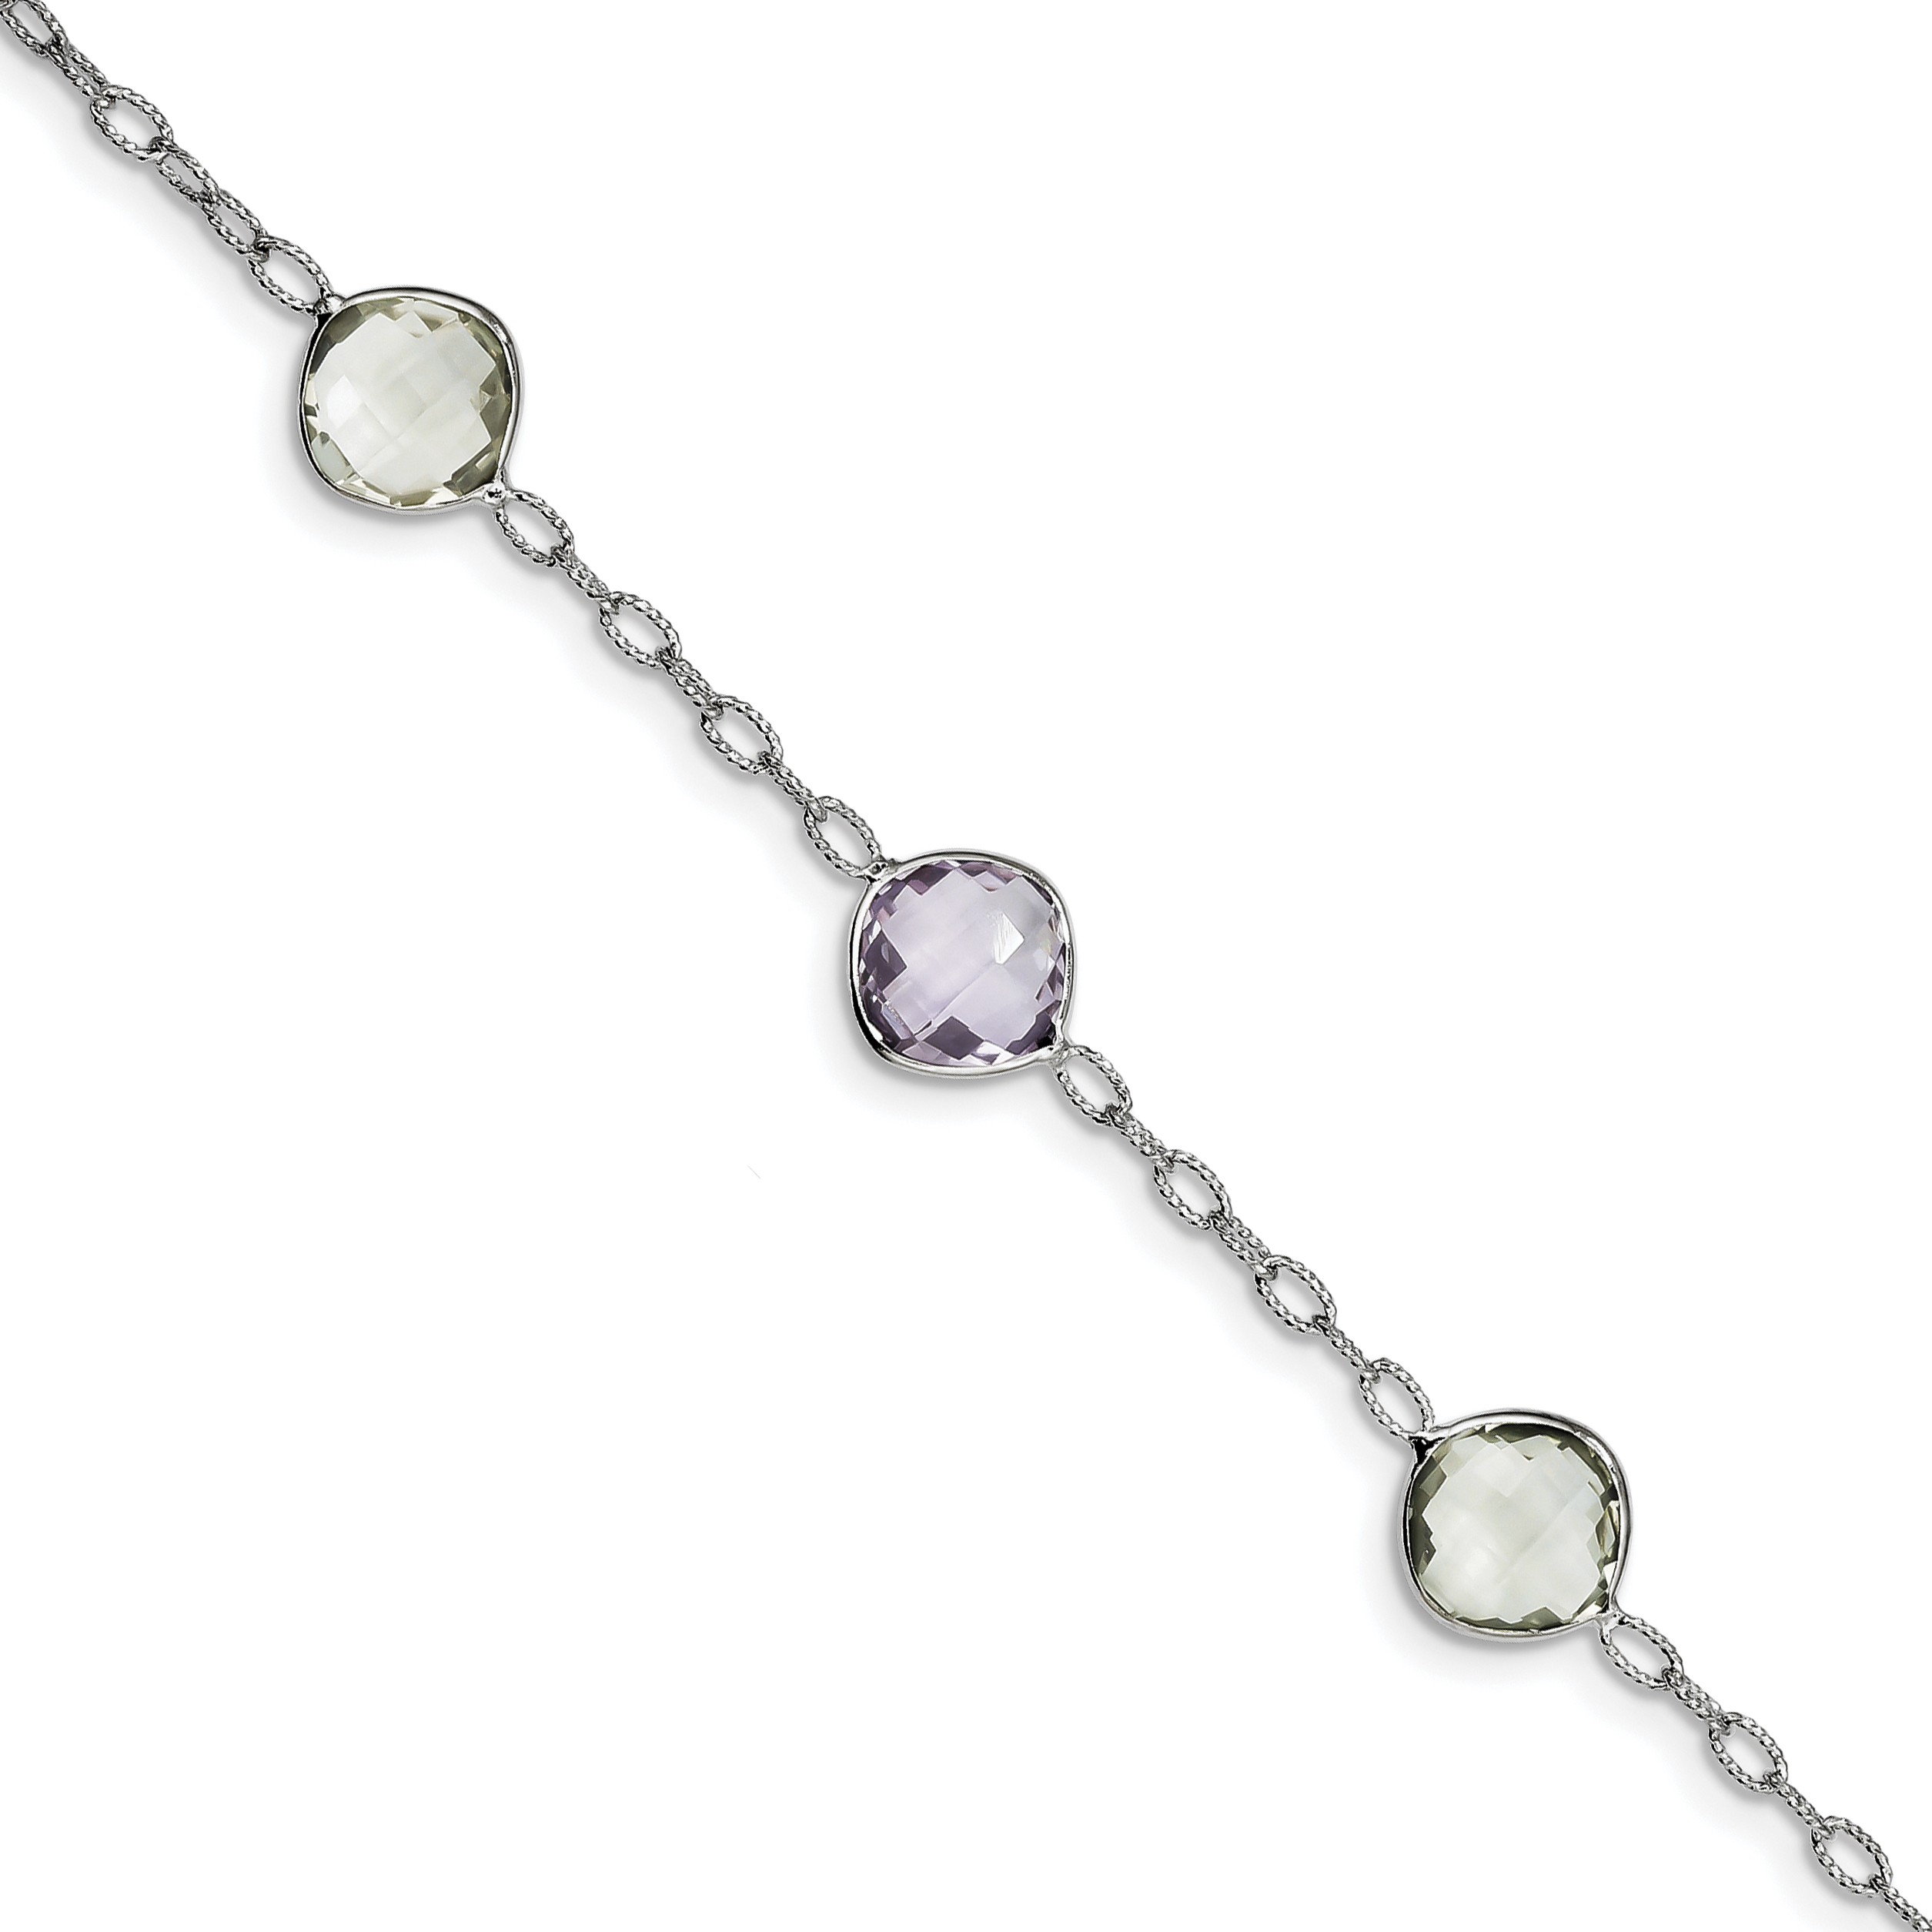 925 Sterling Silver Rhodium-plated Amethyst & Green Quartz Bracelet by